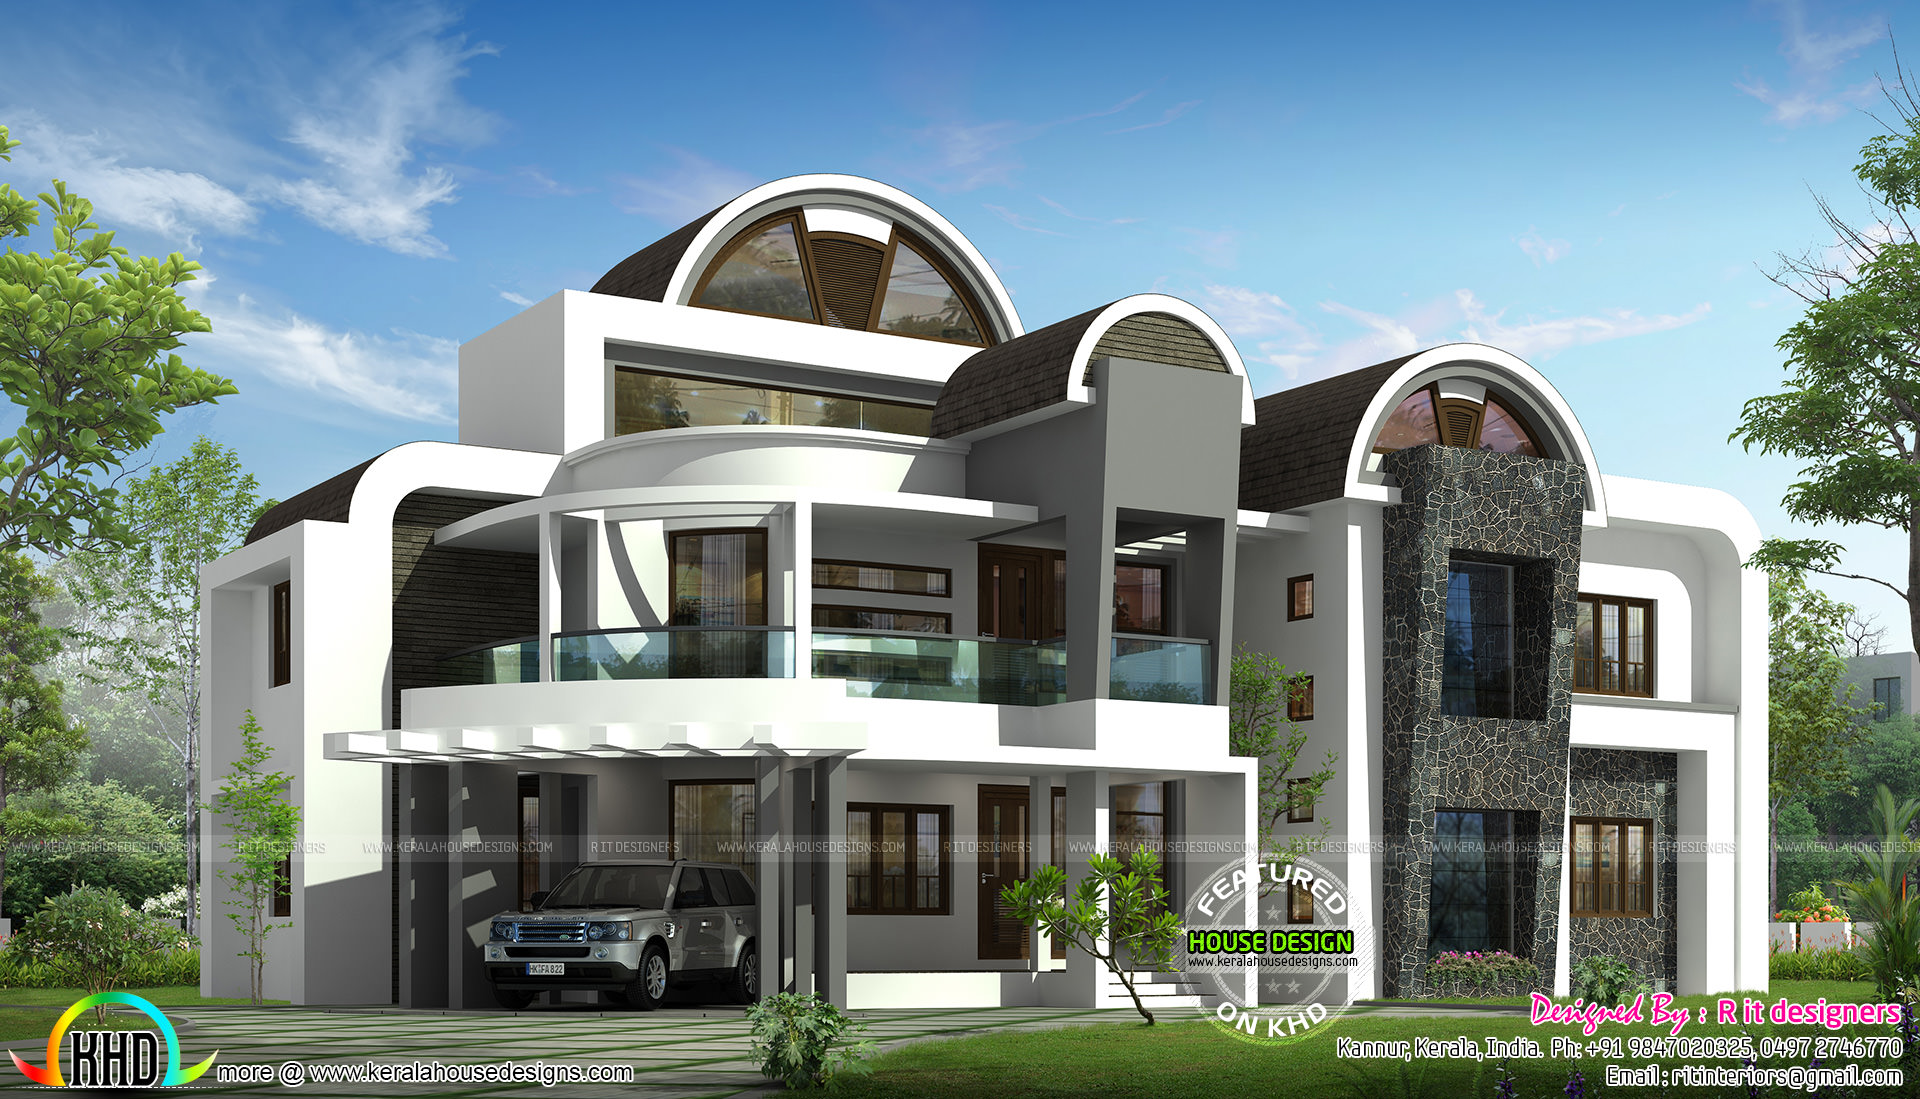 Half round roof unique house design kerala home design for Interesting home designs